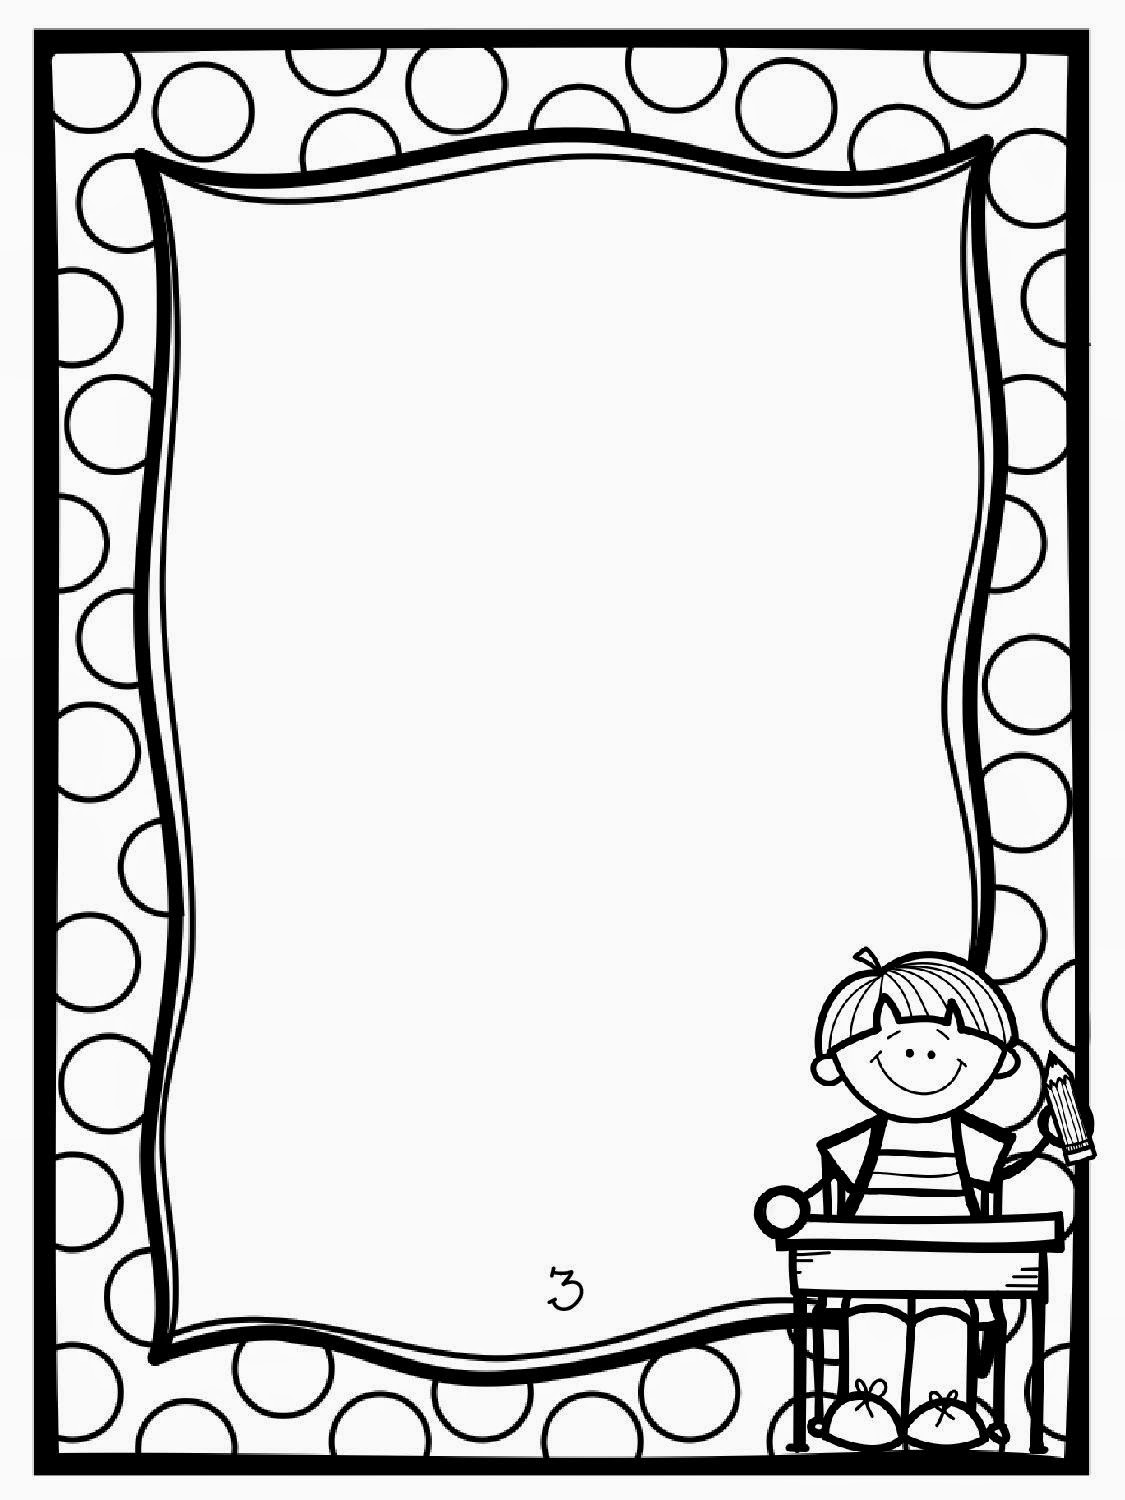 Journal Clipart Black And White.